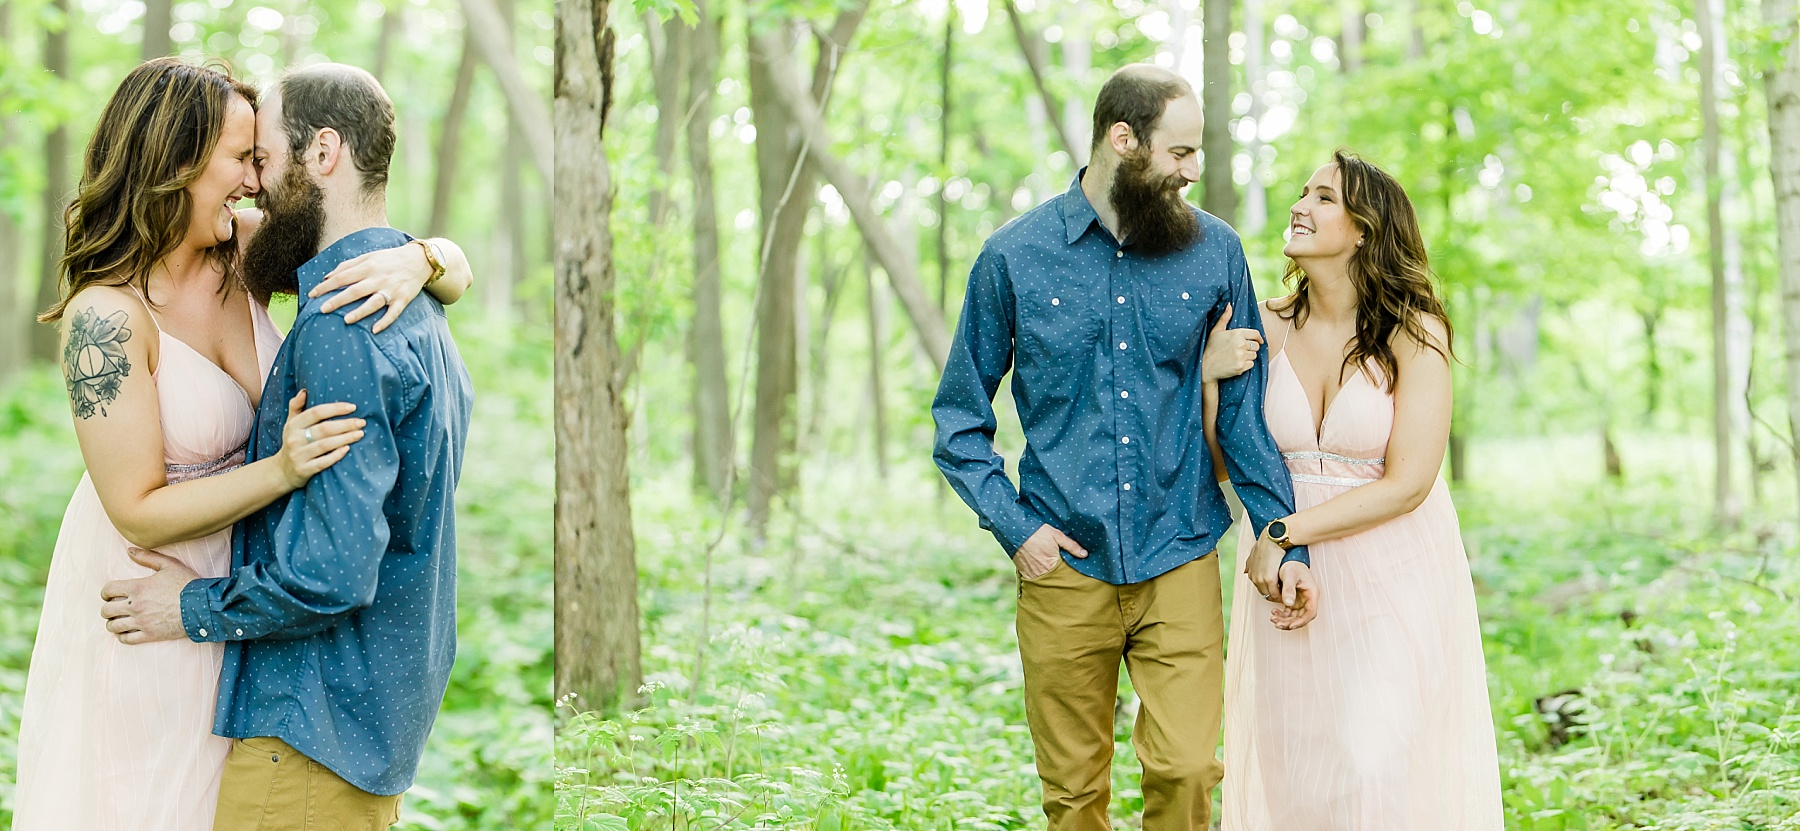 monticello indiana wedding engagement photography simple adventure weird_0022.jpg